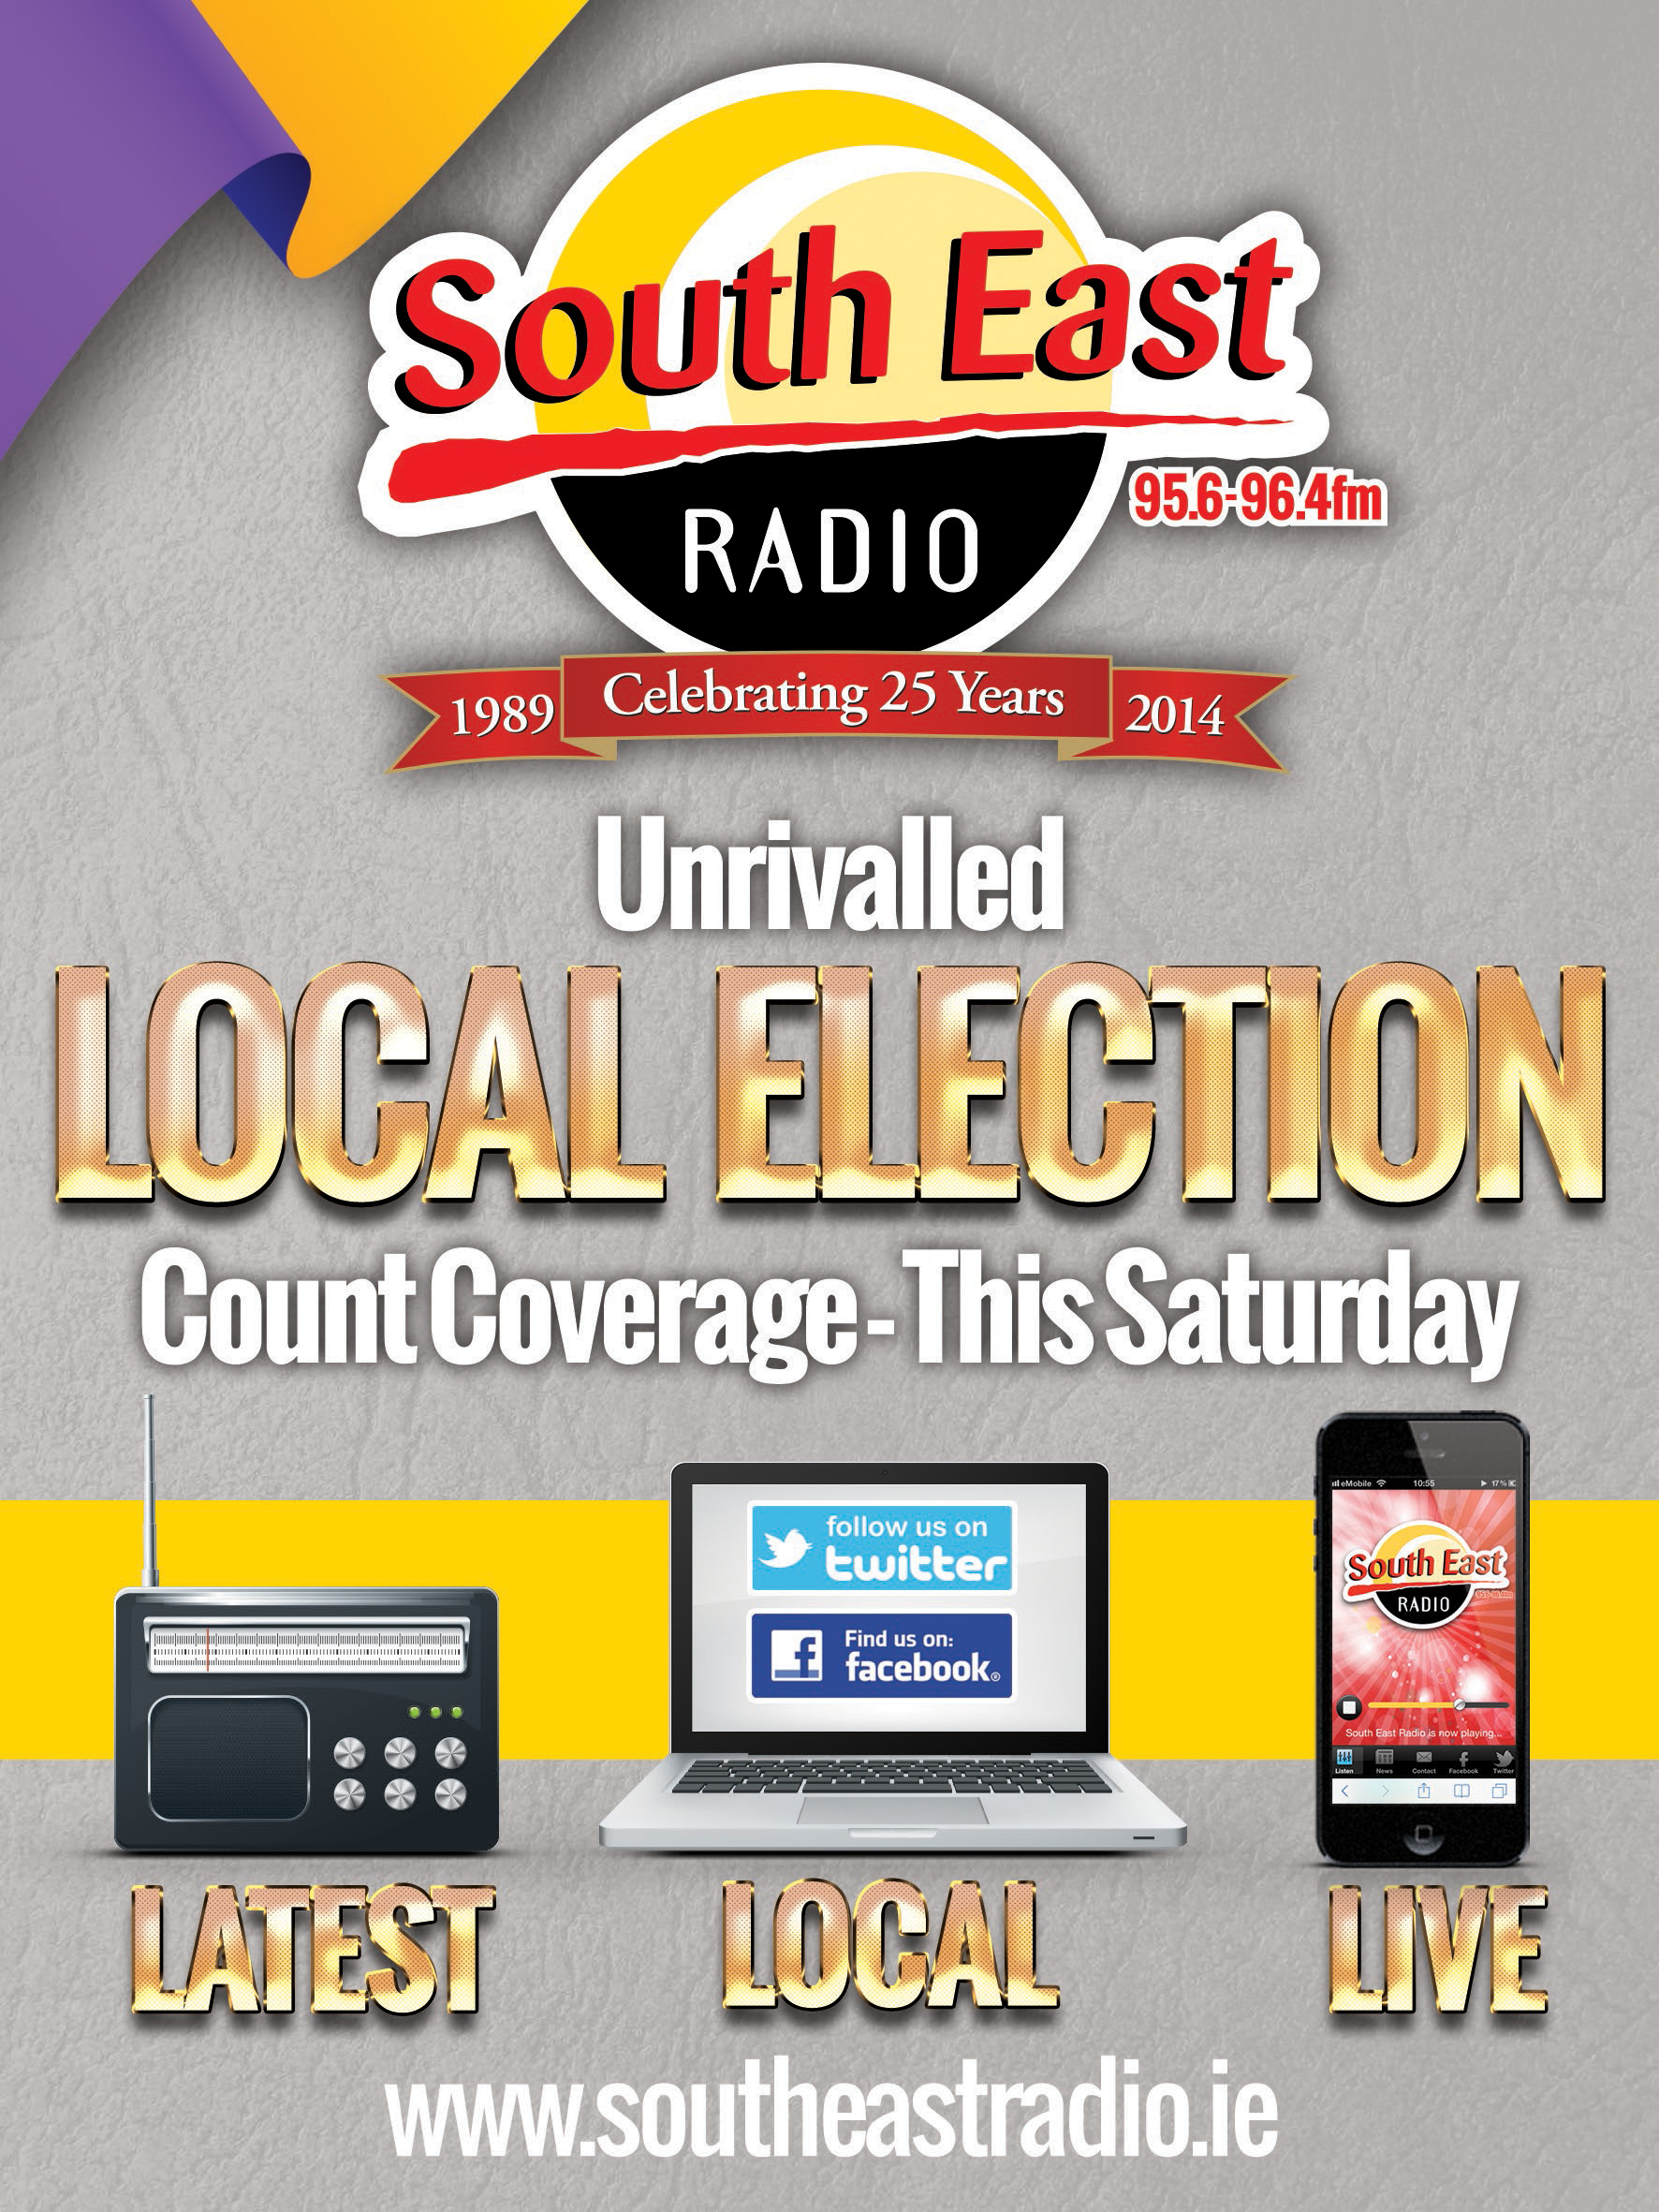 South East Radio for unrivalled Local Election Coverage